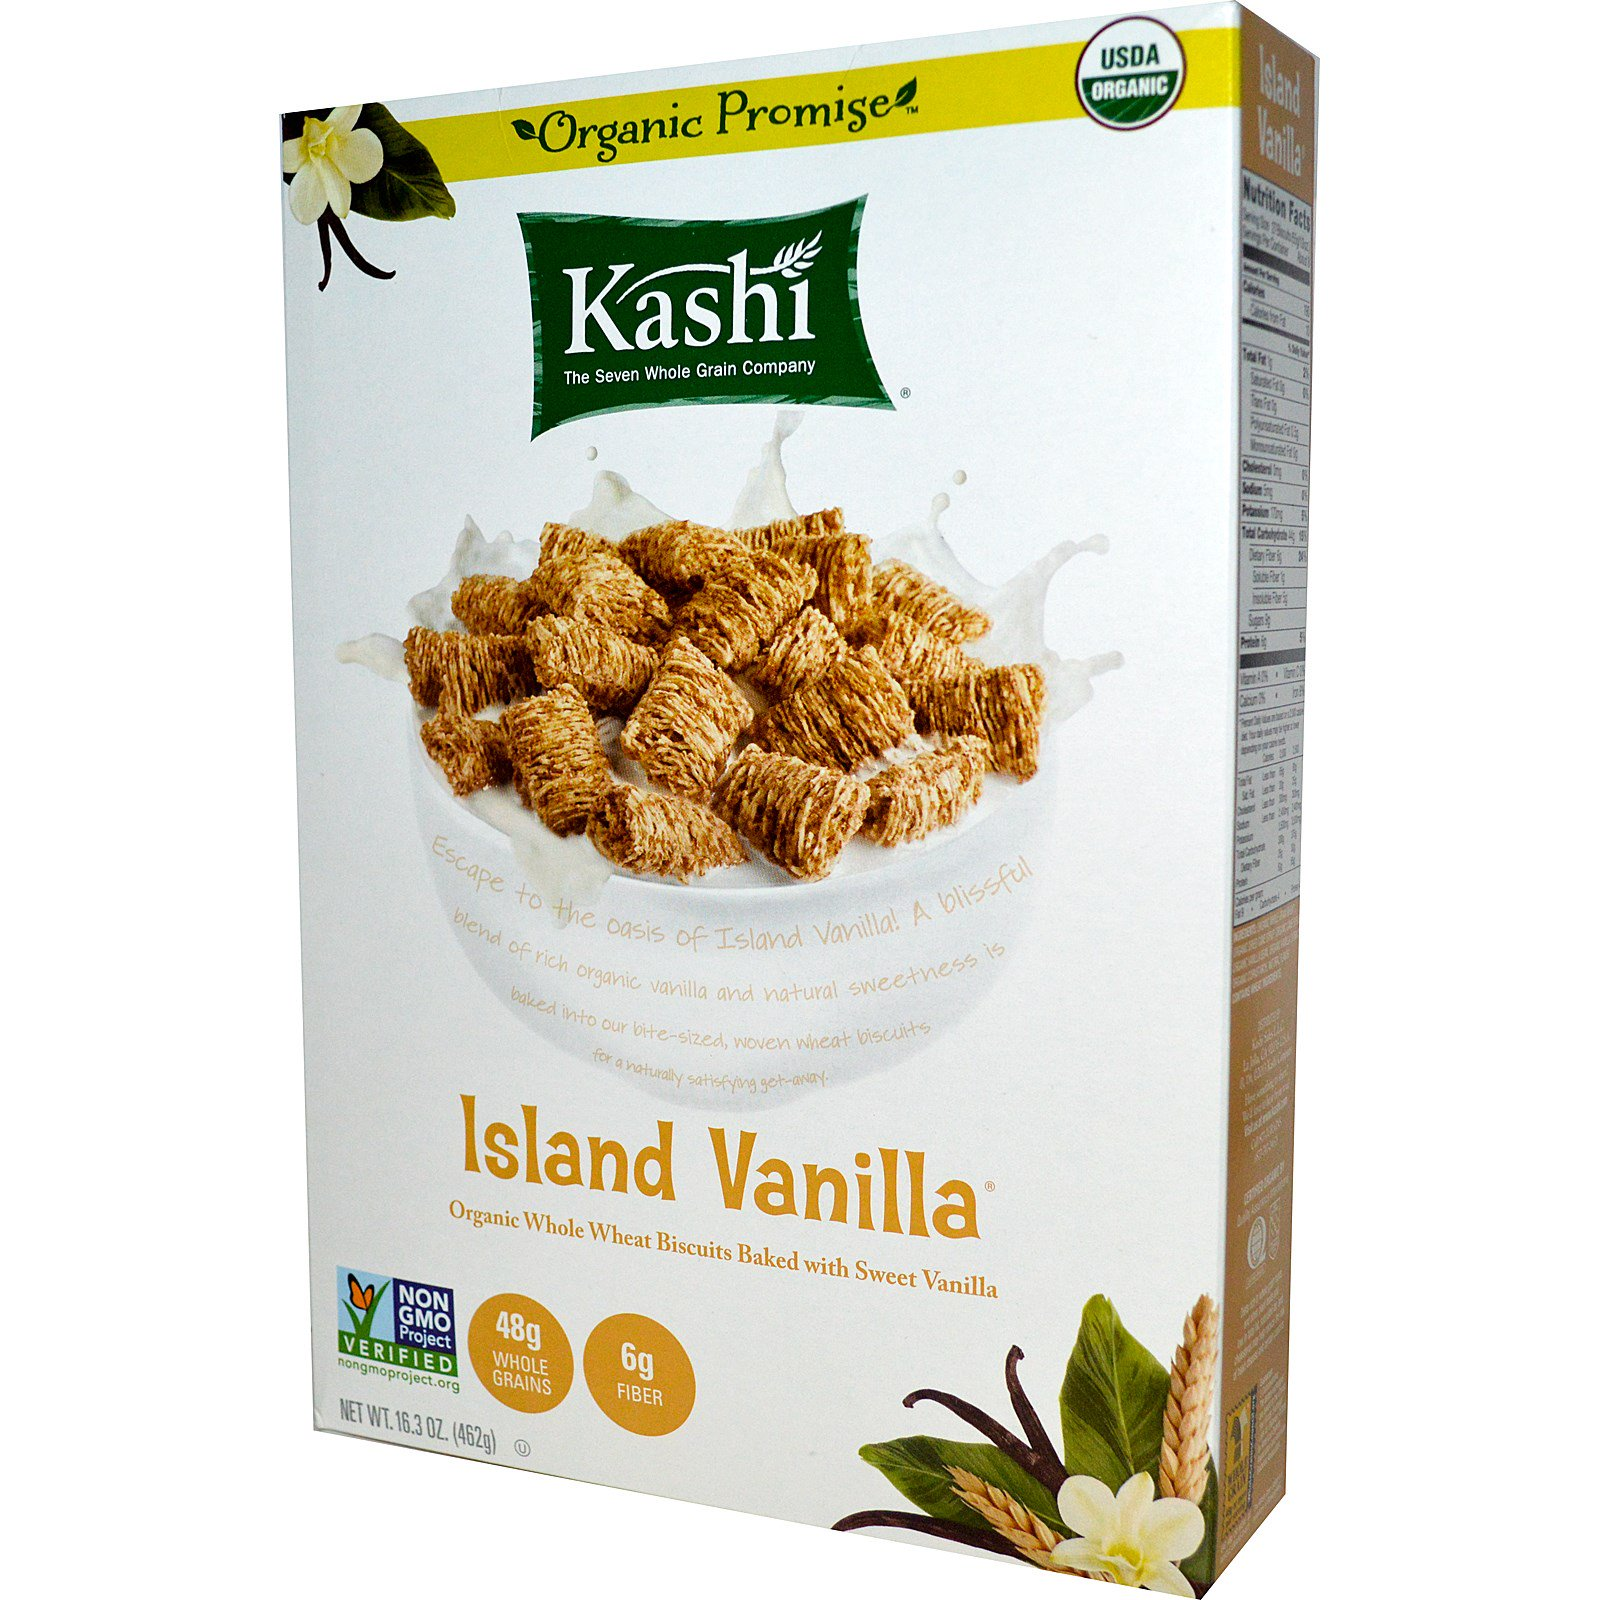 Kashi, Organic Whole Wheat Biscuits Cereal, Island Vanilla